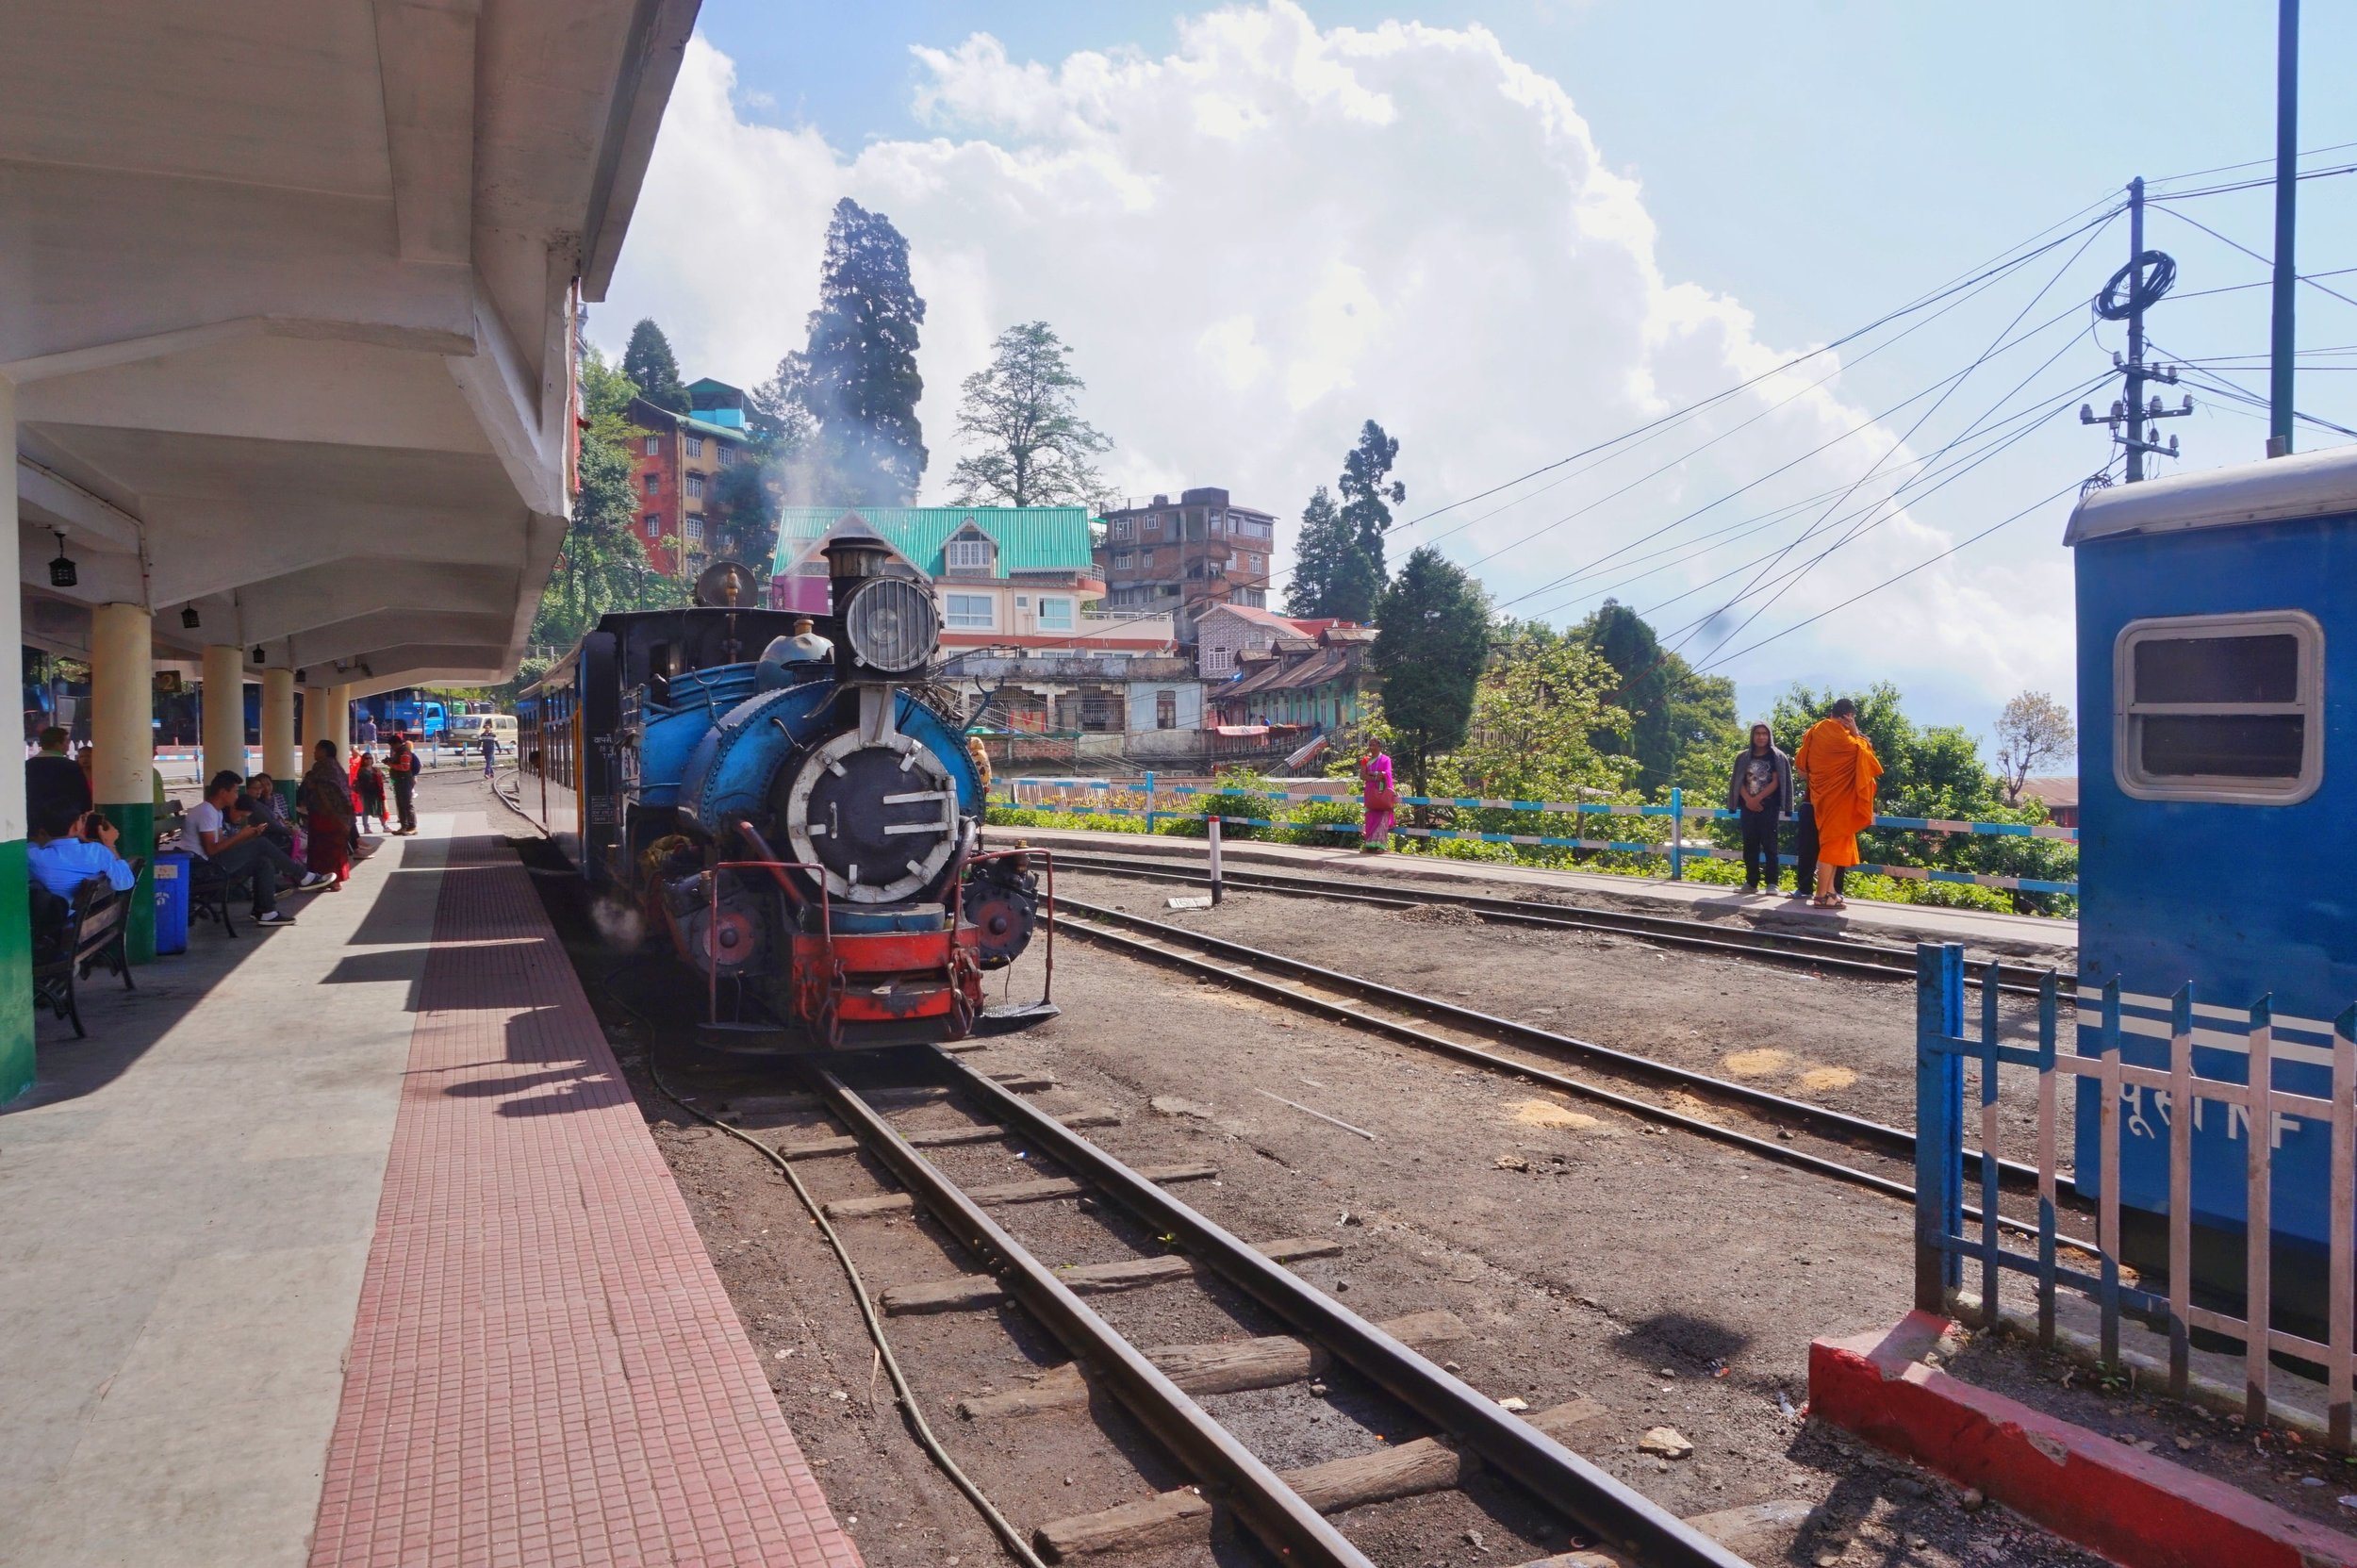 The railway station with its old steam engines is one of the best places to visit in Darjeeling.